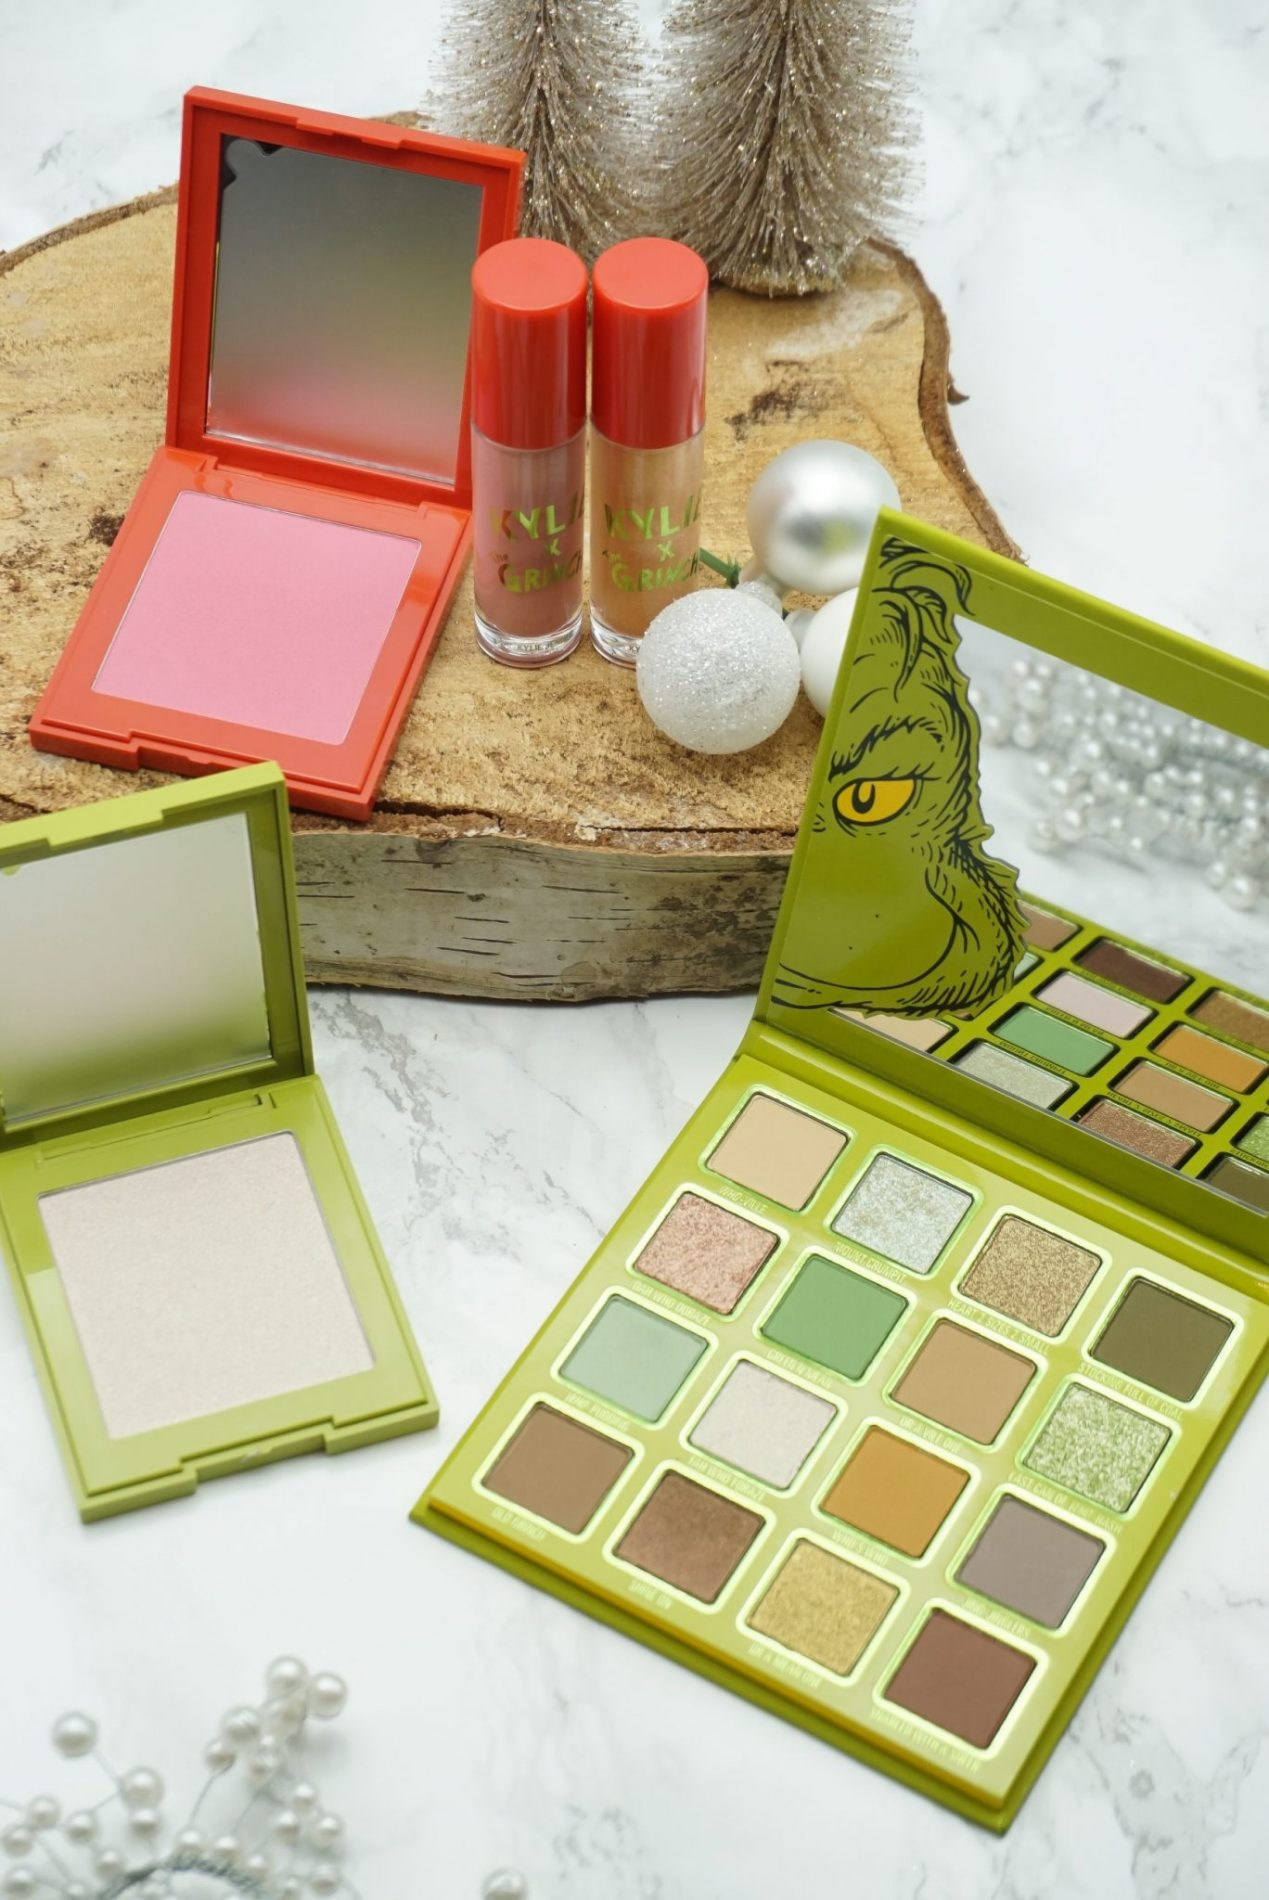 Kylie Cosmetics x The Grinch Holiday Collection 2020